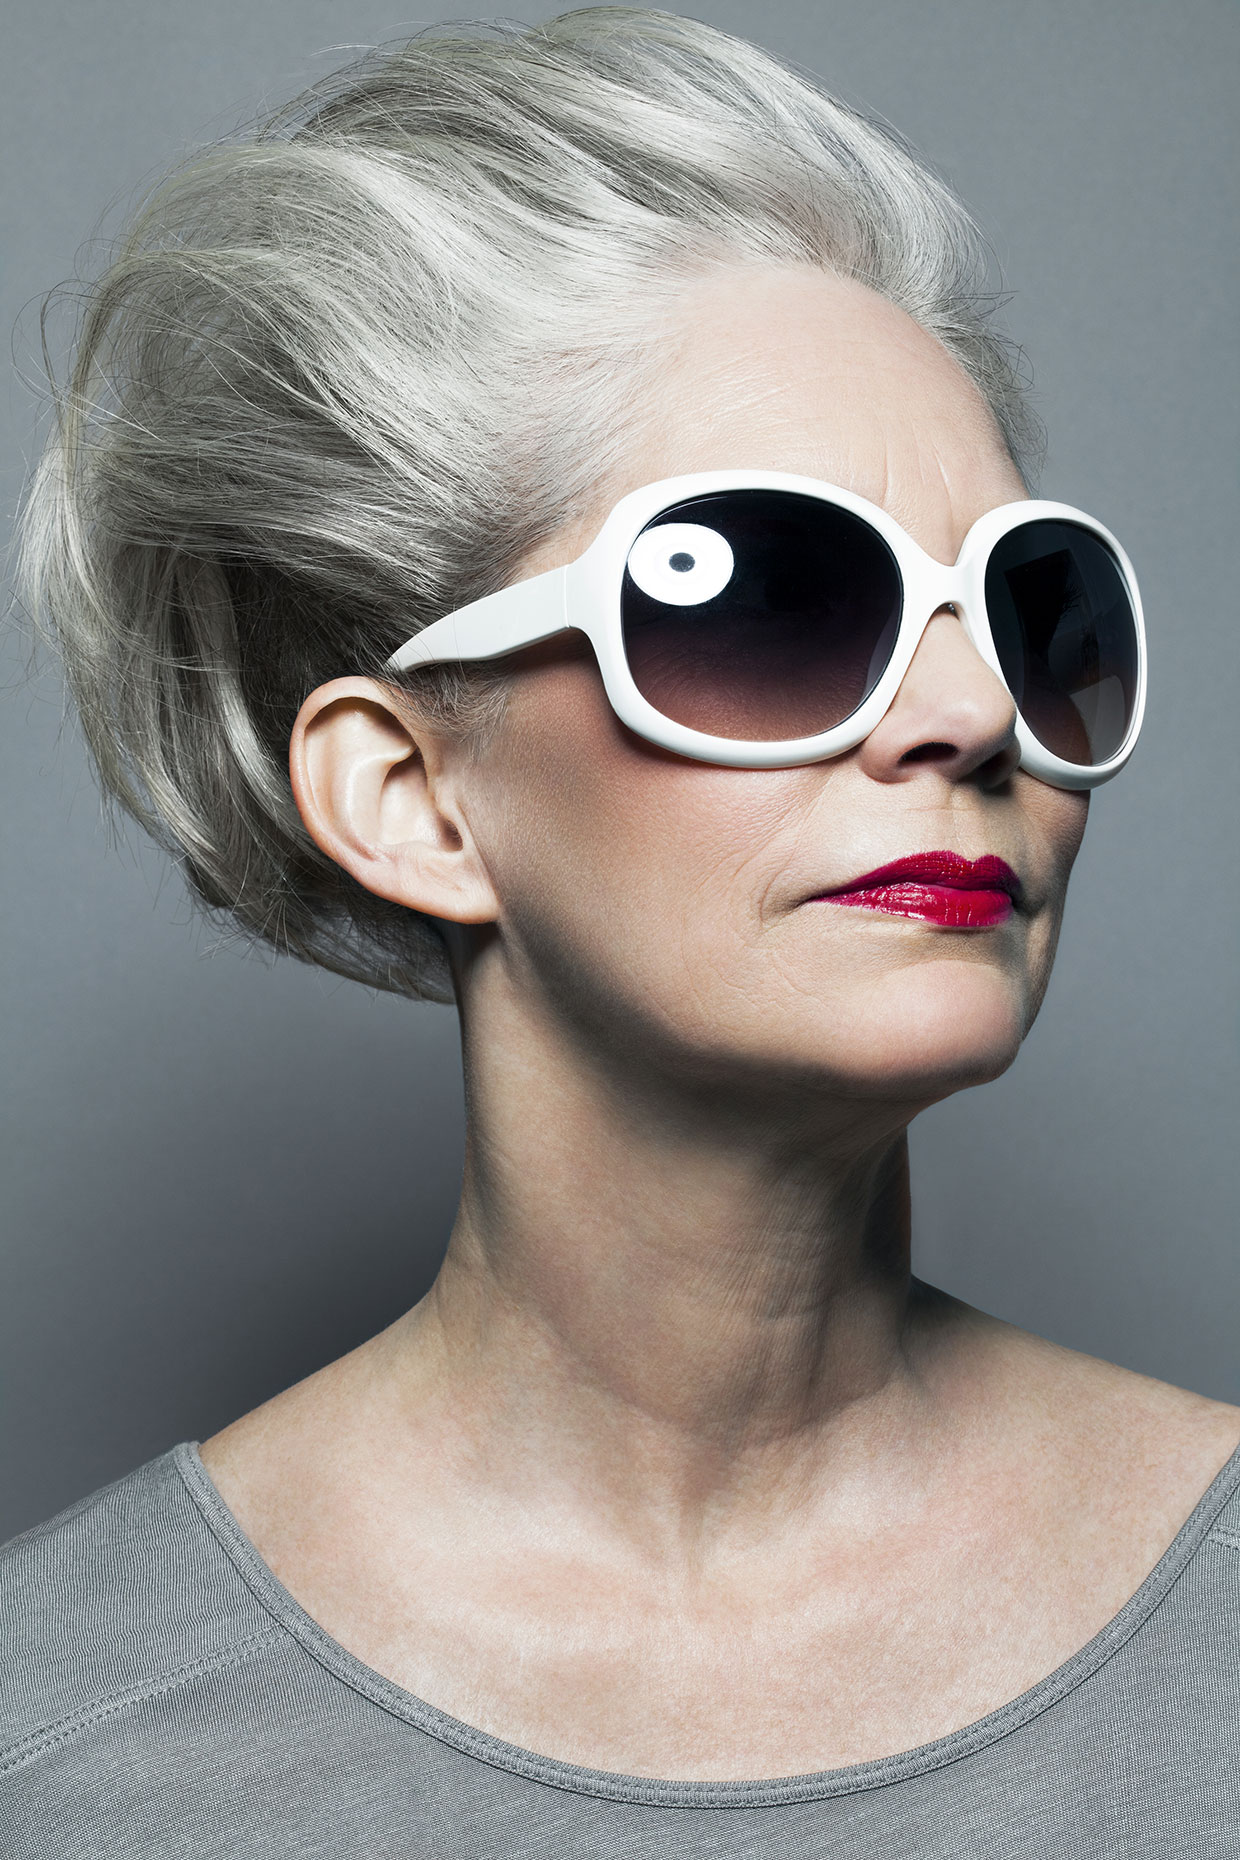 Mature woman with silvery, gray hair and red lipstick and sunglasses.